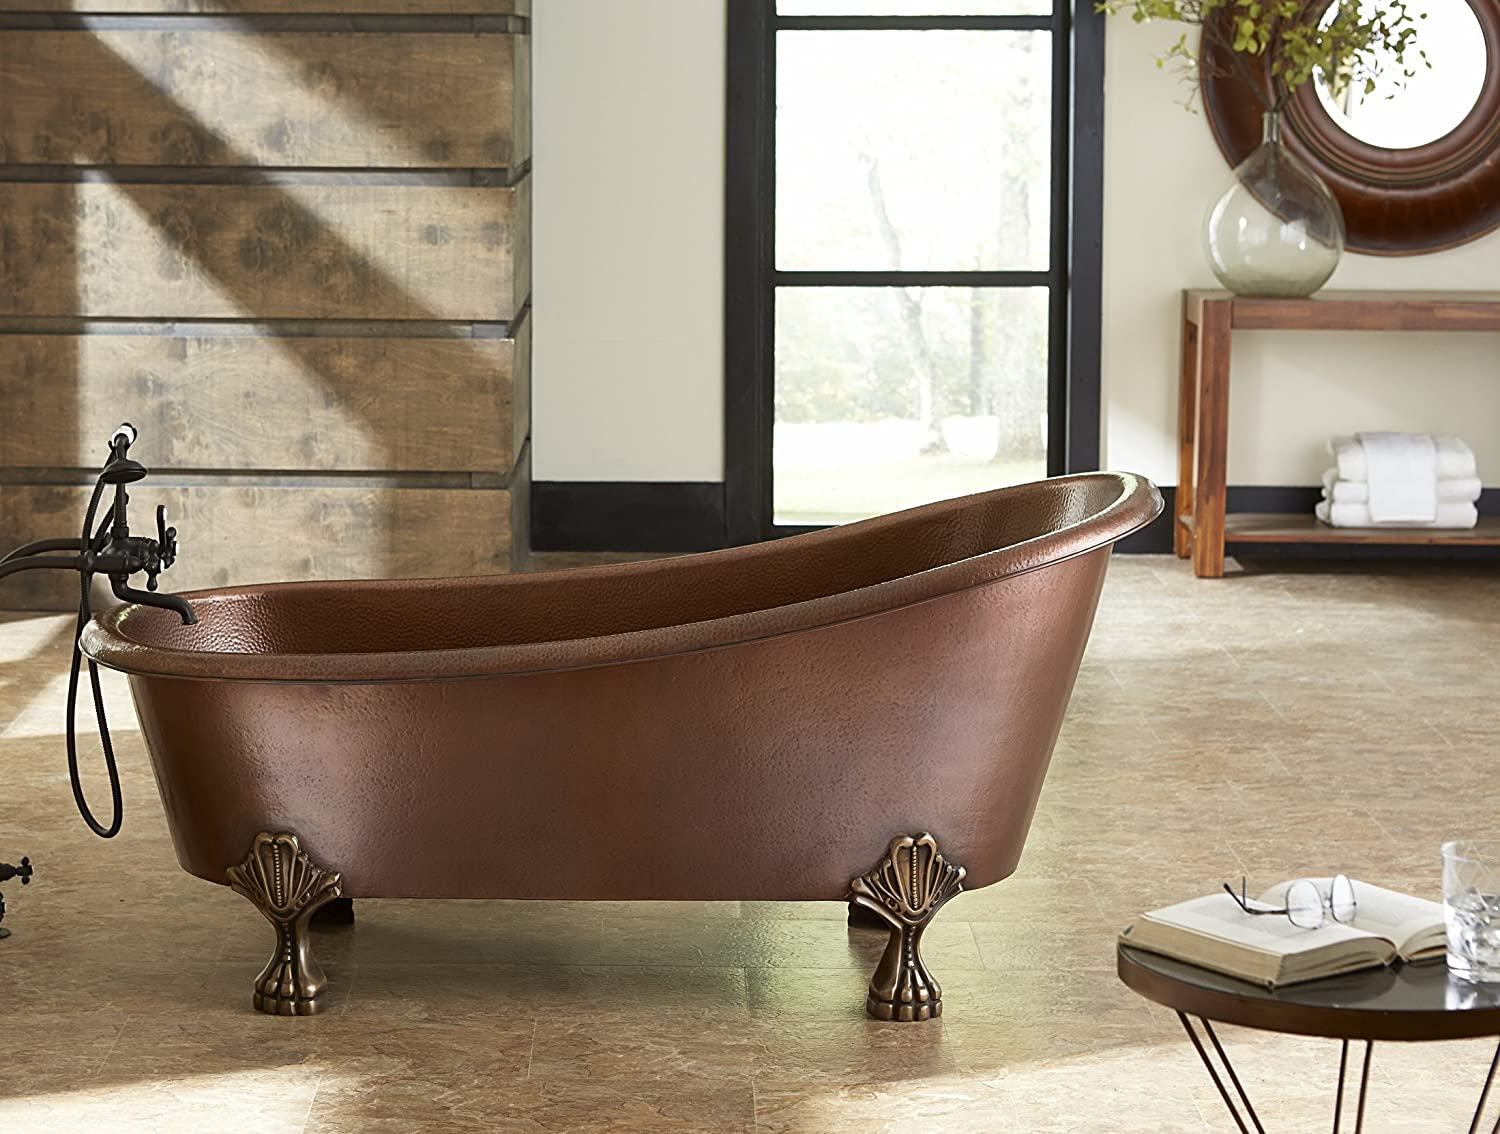 sinkology tbt6631cl heisenberg handmade pure solid claw foot bath tub 55u0027 antique copper amazoncom - Copper Bathtub